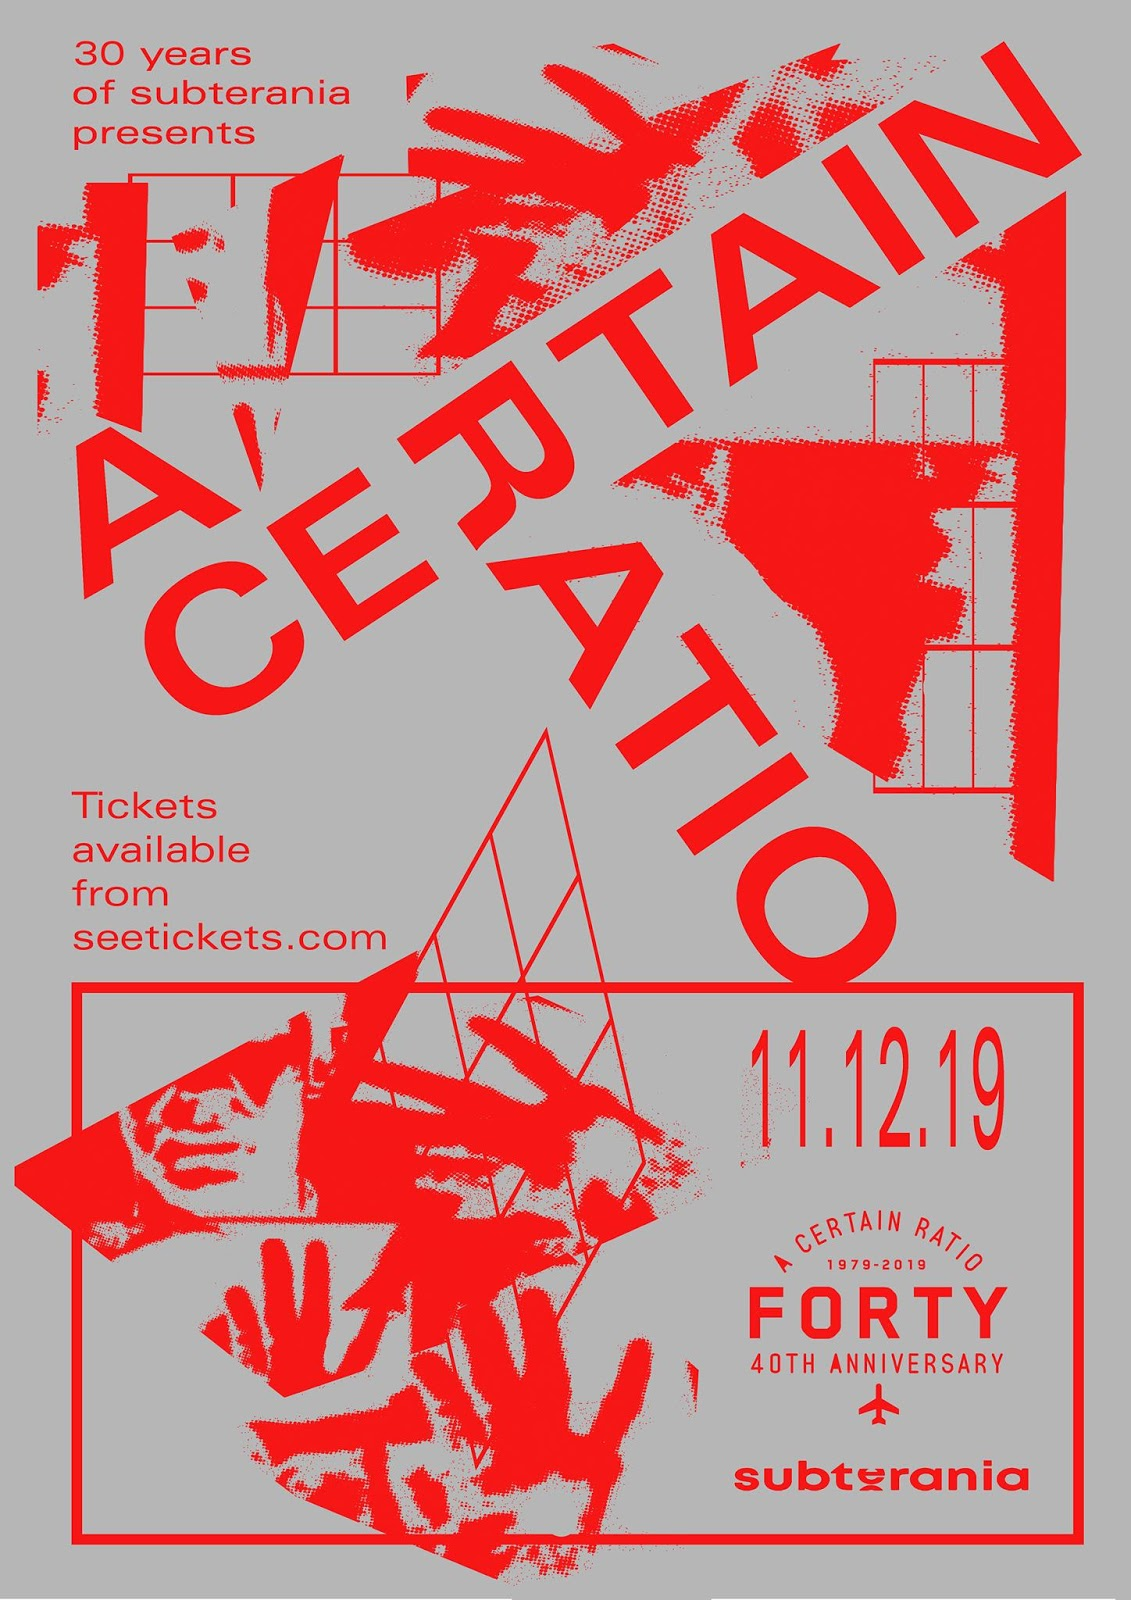 ACR Gigography - 11 December 2019, Subterania, London